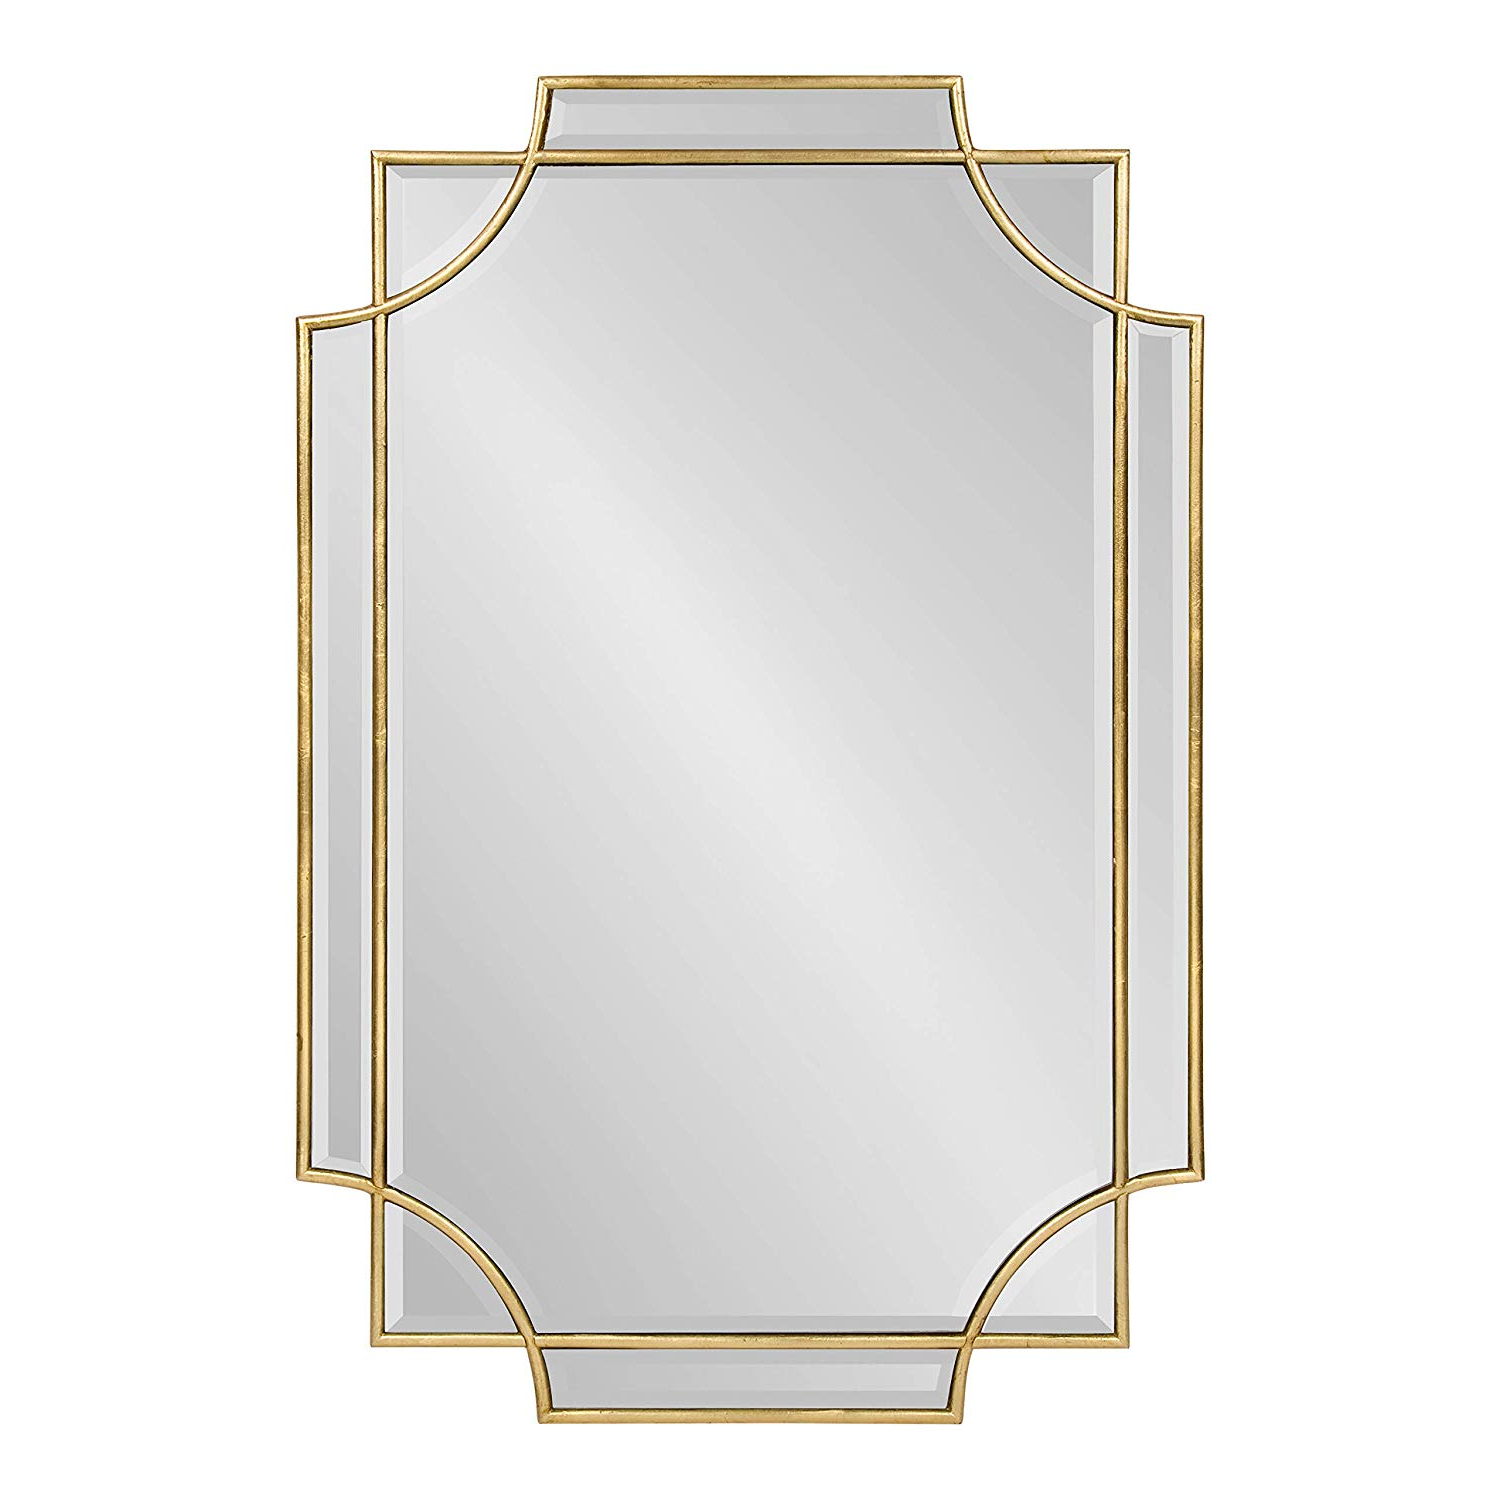 Rectangle Ornate Geometric Wall Mirrors With Best And Newest Kate And Laurel Minuette Decorative Rectangle Frame Wall Mirror In Gold Leaf, 24x (View 7 of 20)